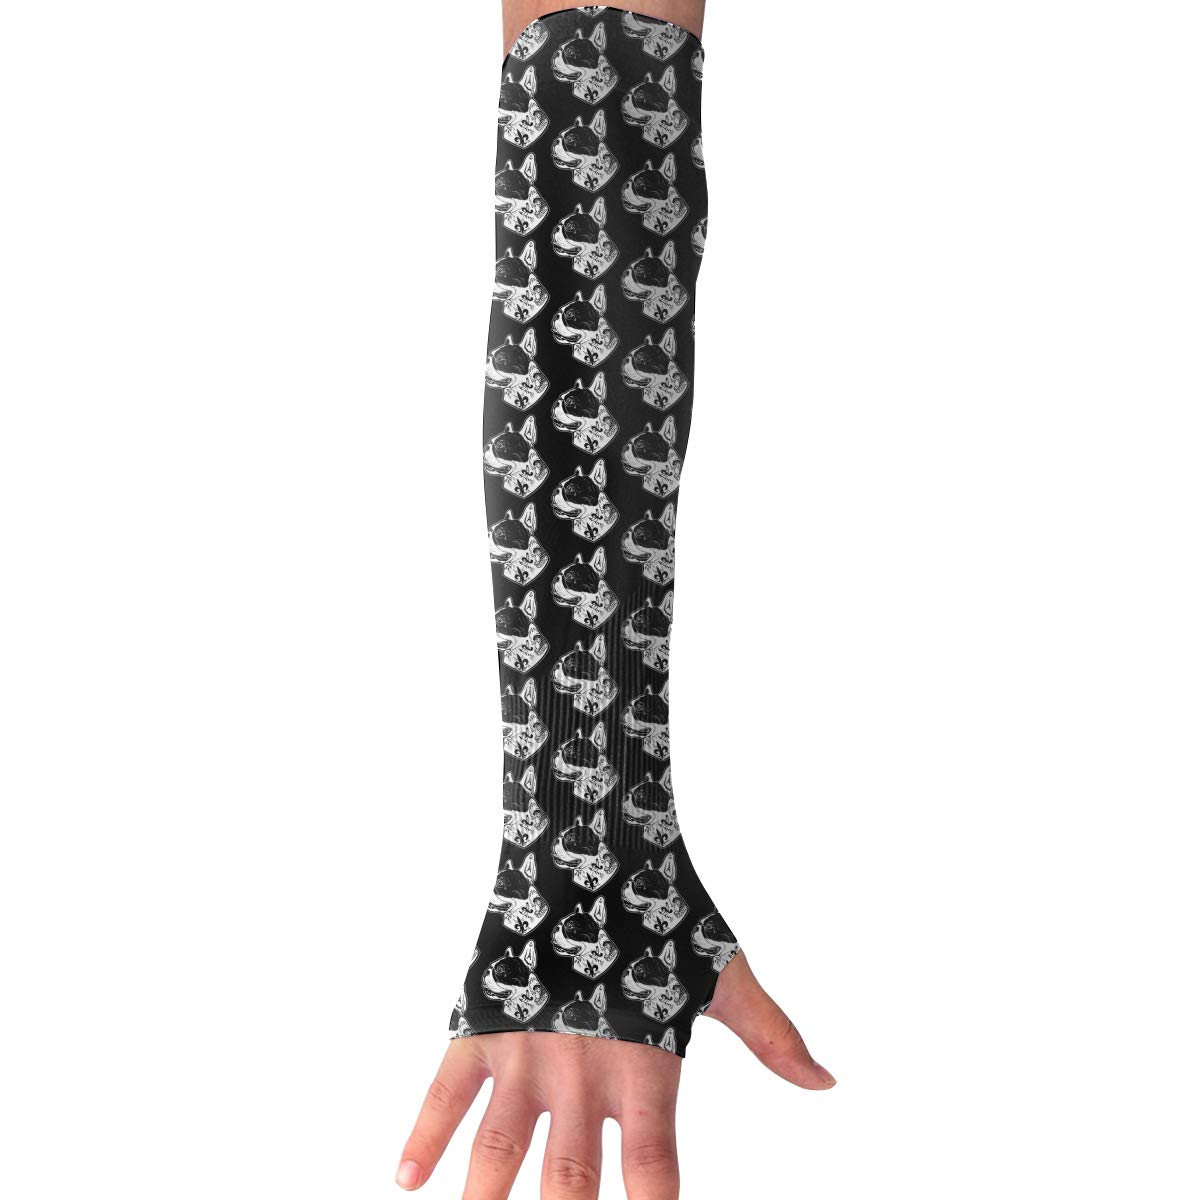 Tattooed French Bulldog UV Sun Protective Outdoors Stretchy Cool Arm Sleeves Warmer Long Sleeve Glove